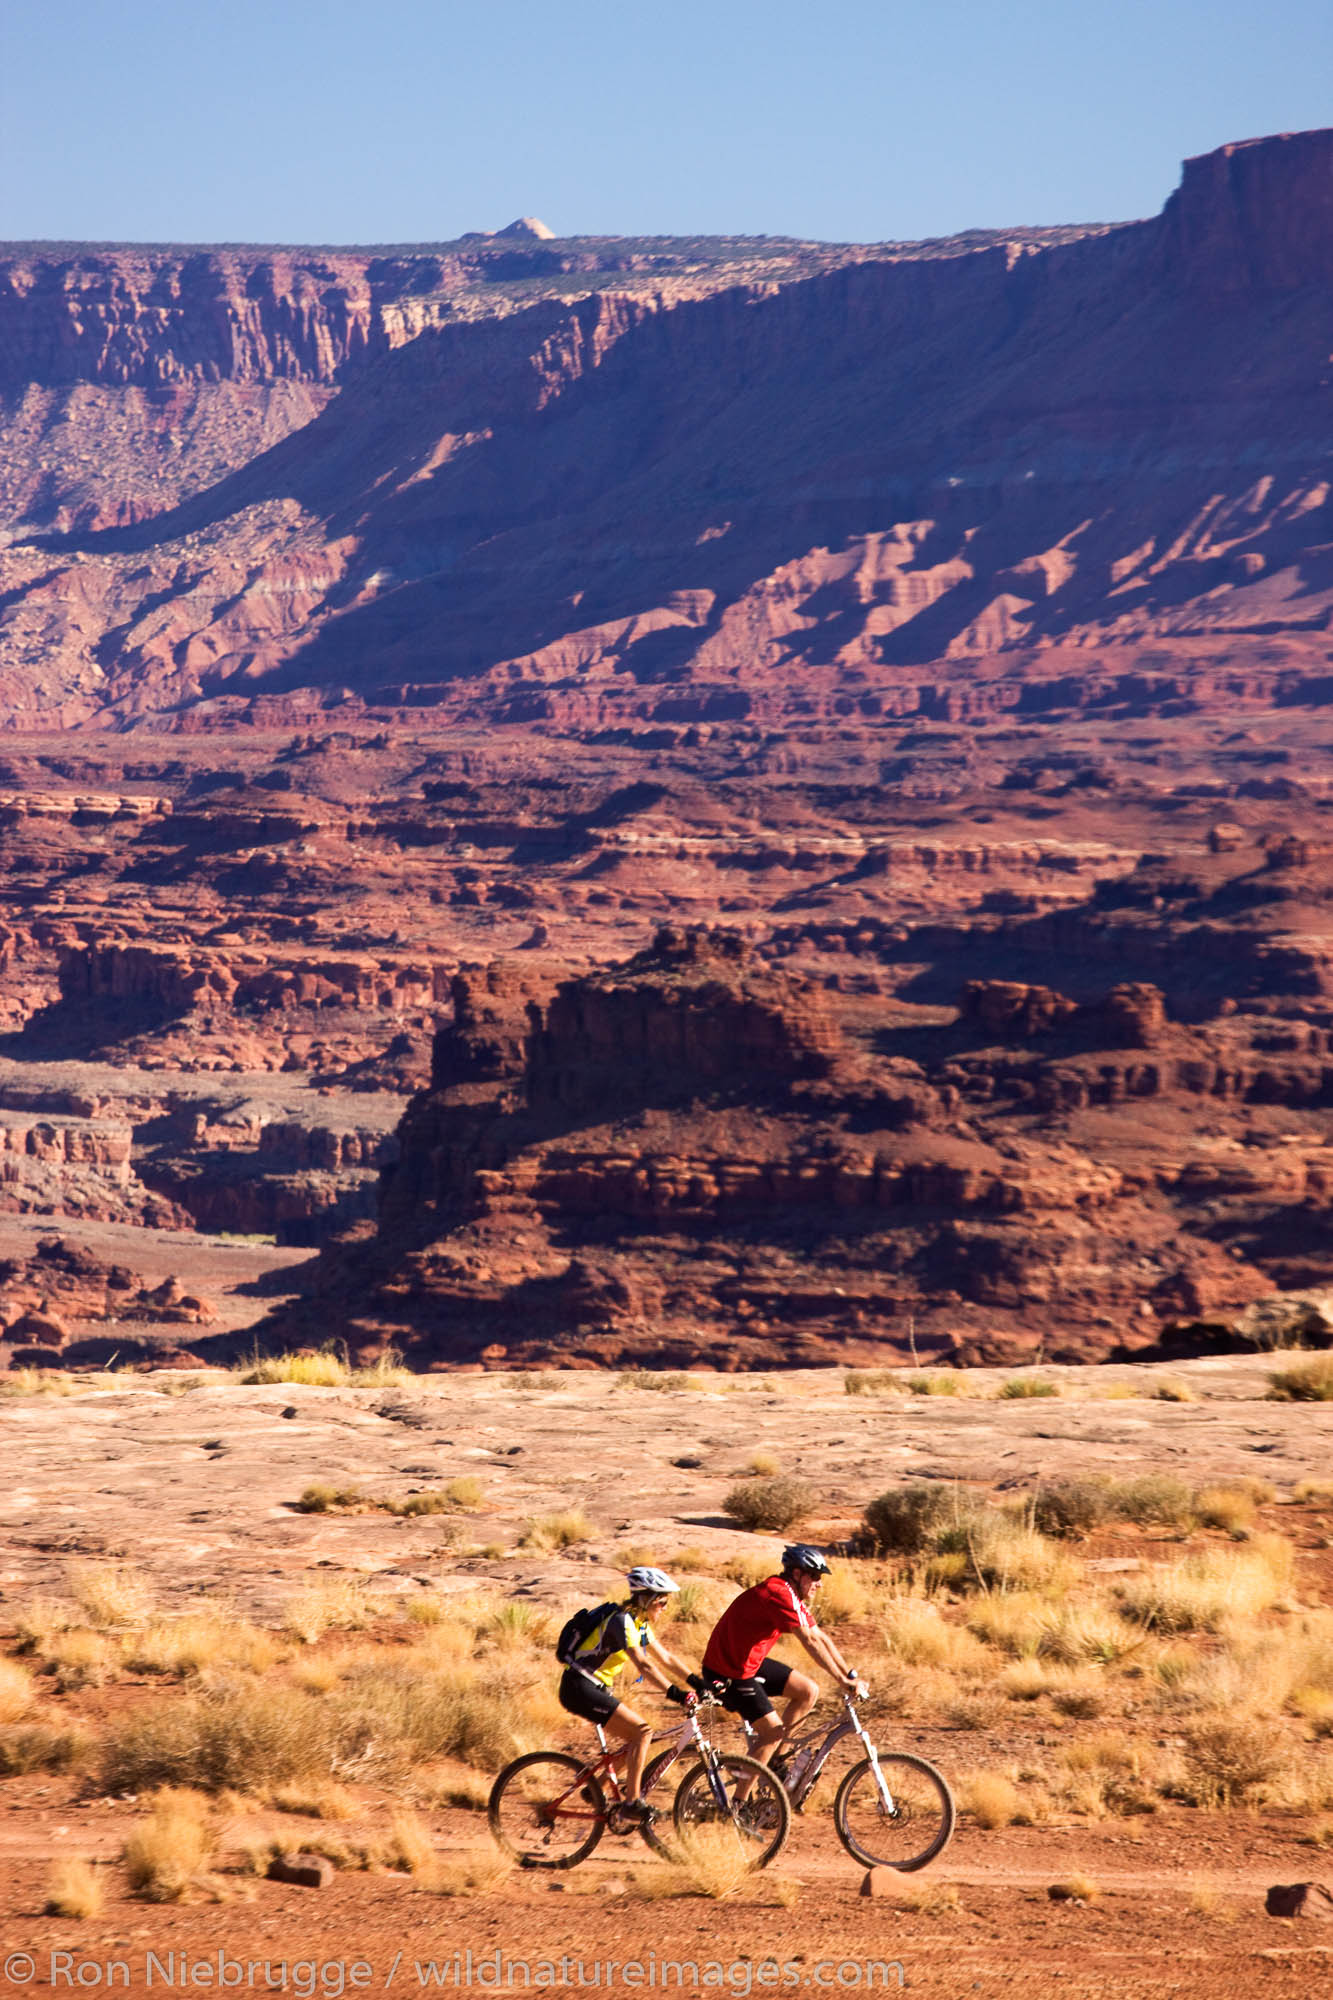 Mountain biking on the White Rim Trail, Island in the Sky District, Canyonlands National Park, near Moab, Utah.